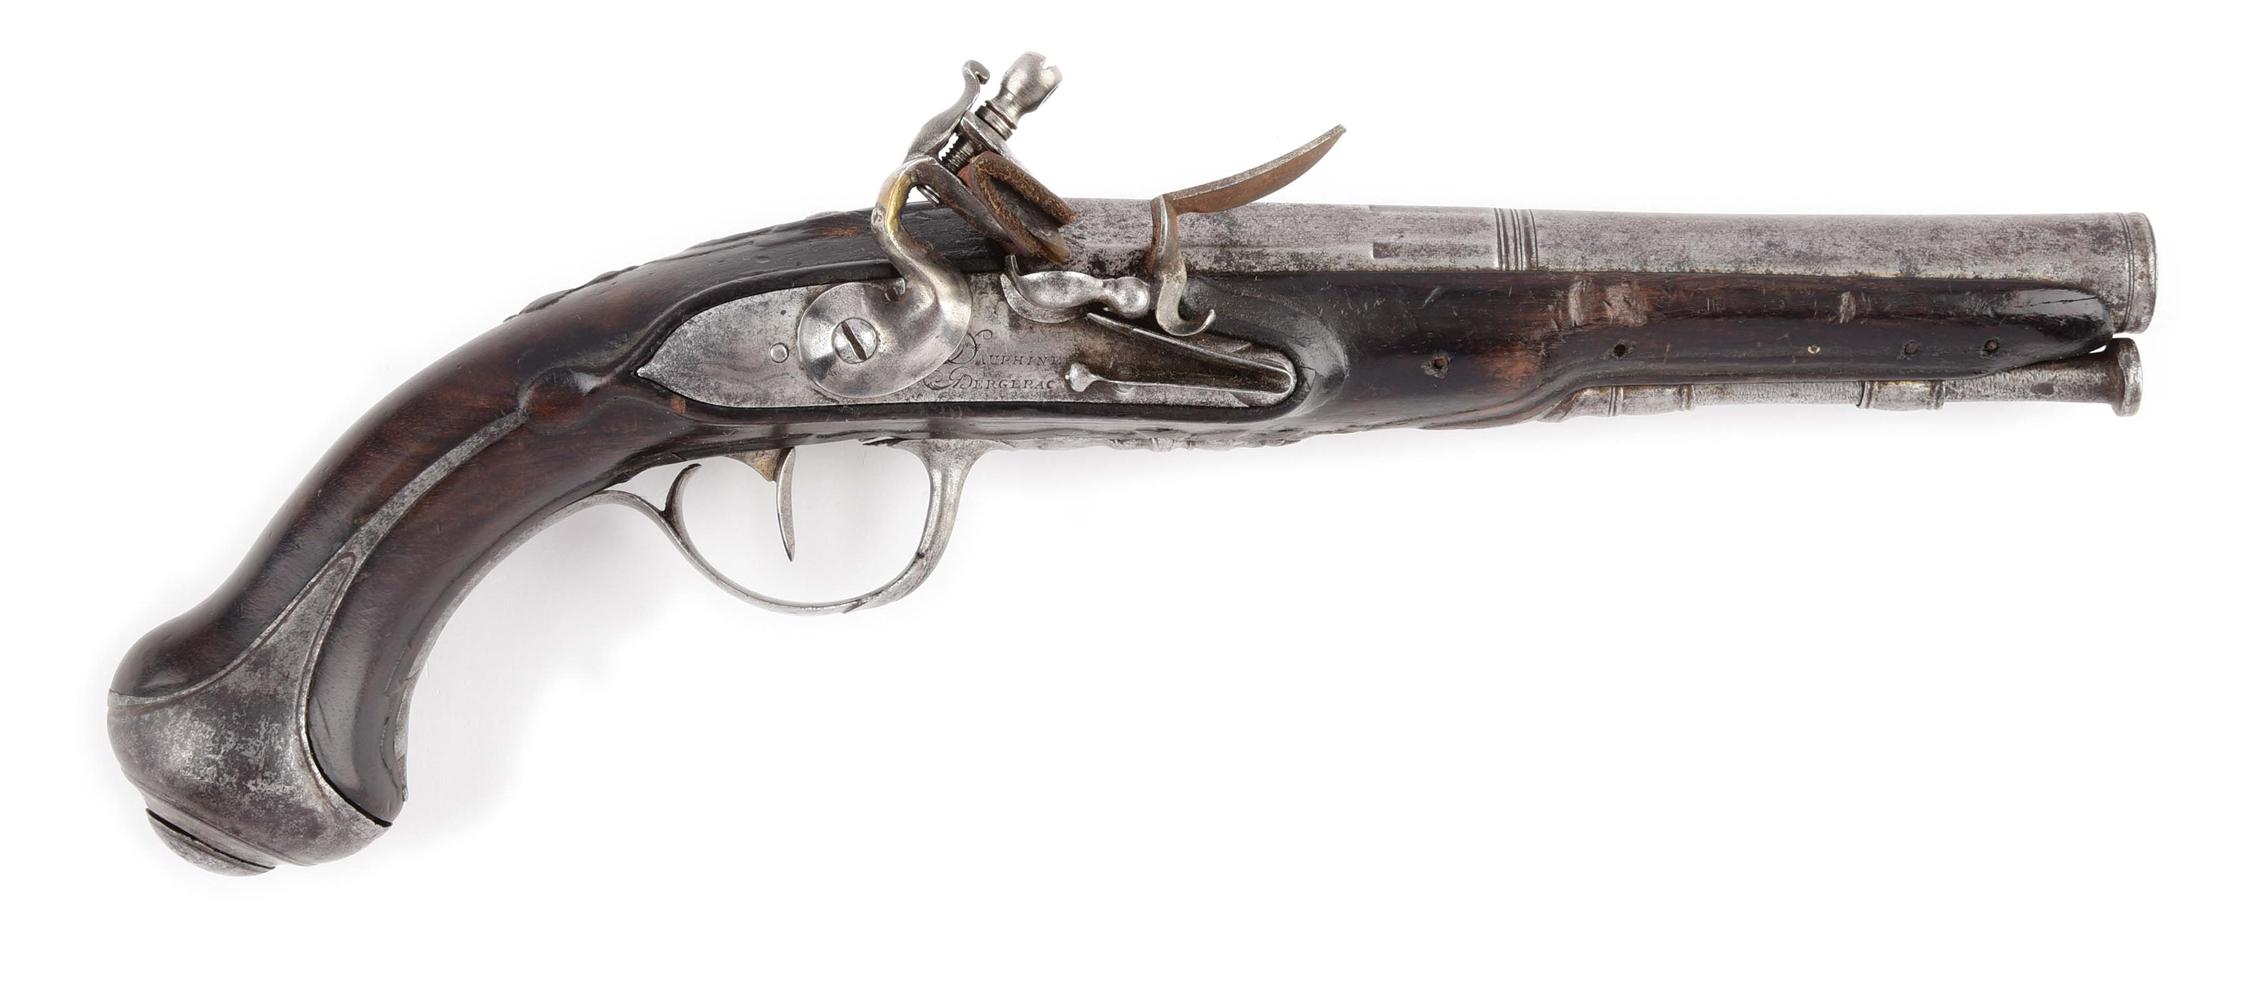 (A) FRENCH FLINTLOCK PISTOL BY DAUPHINE BERGERAC.